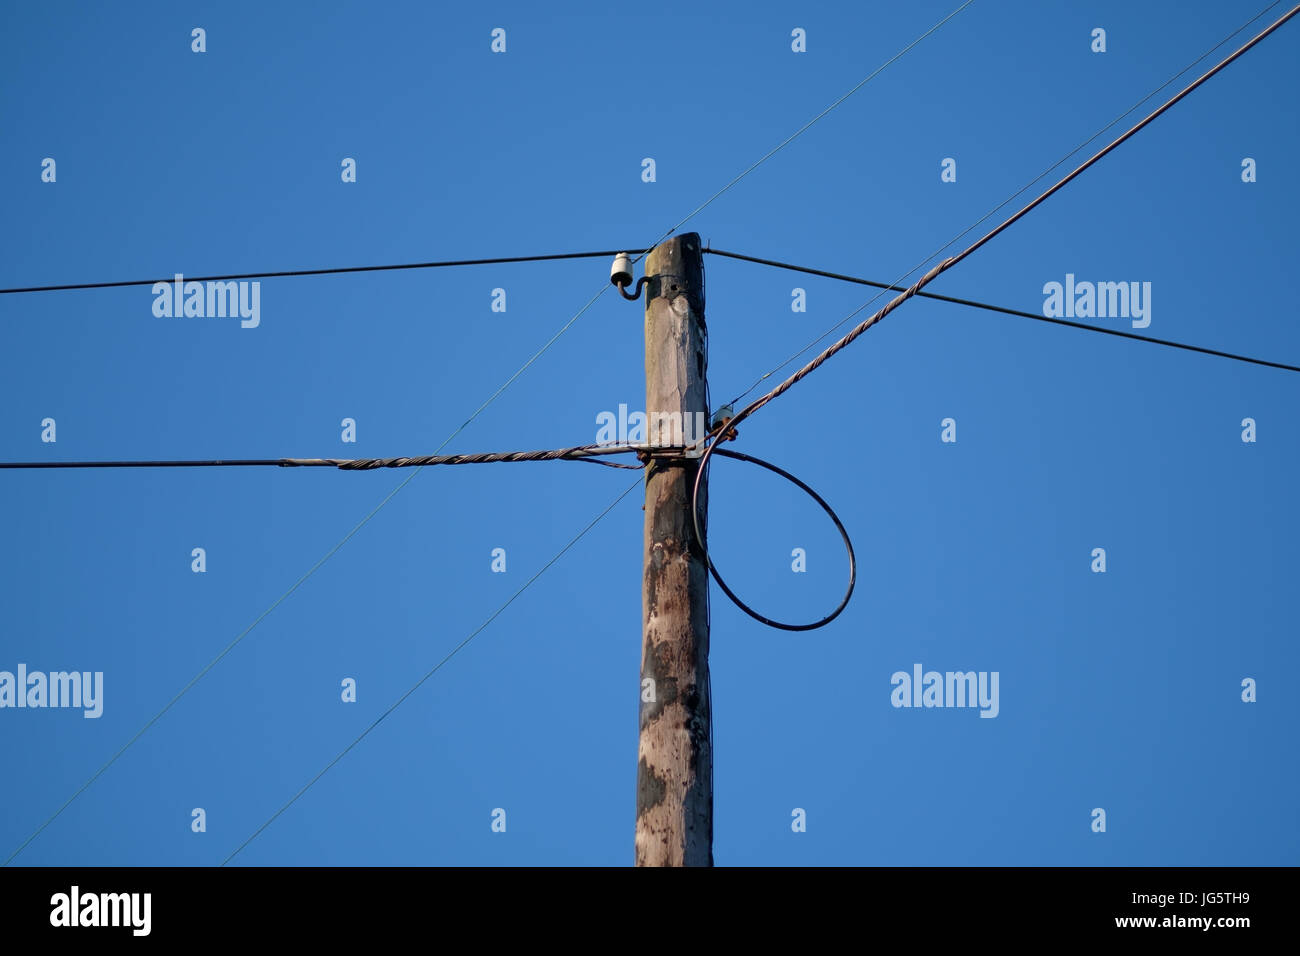 Low tension electrical pole on blue sky - Stock Image